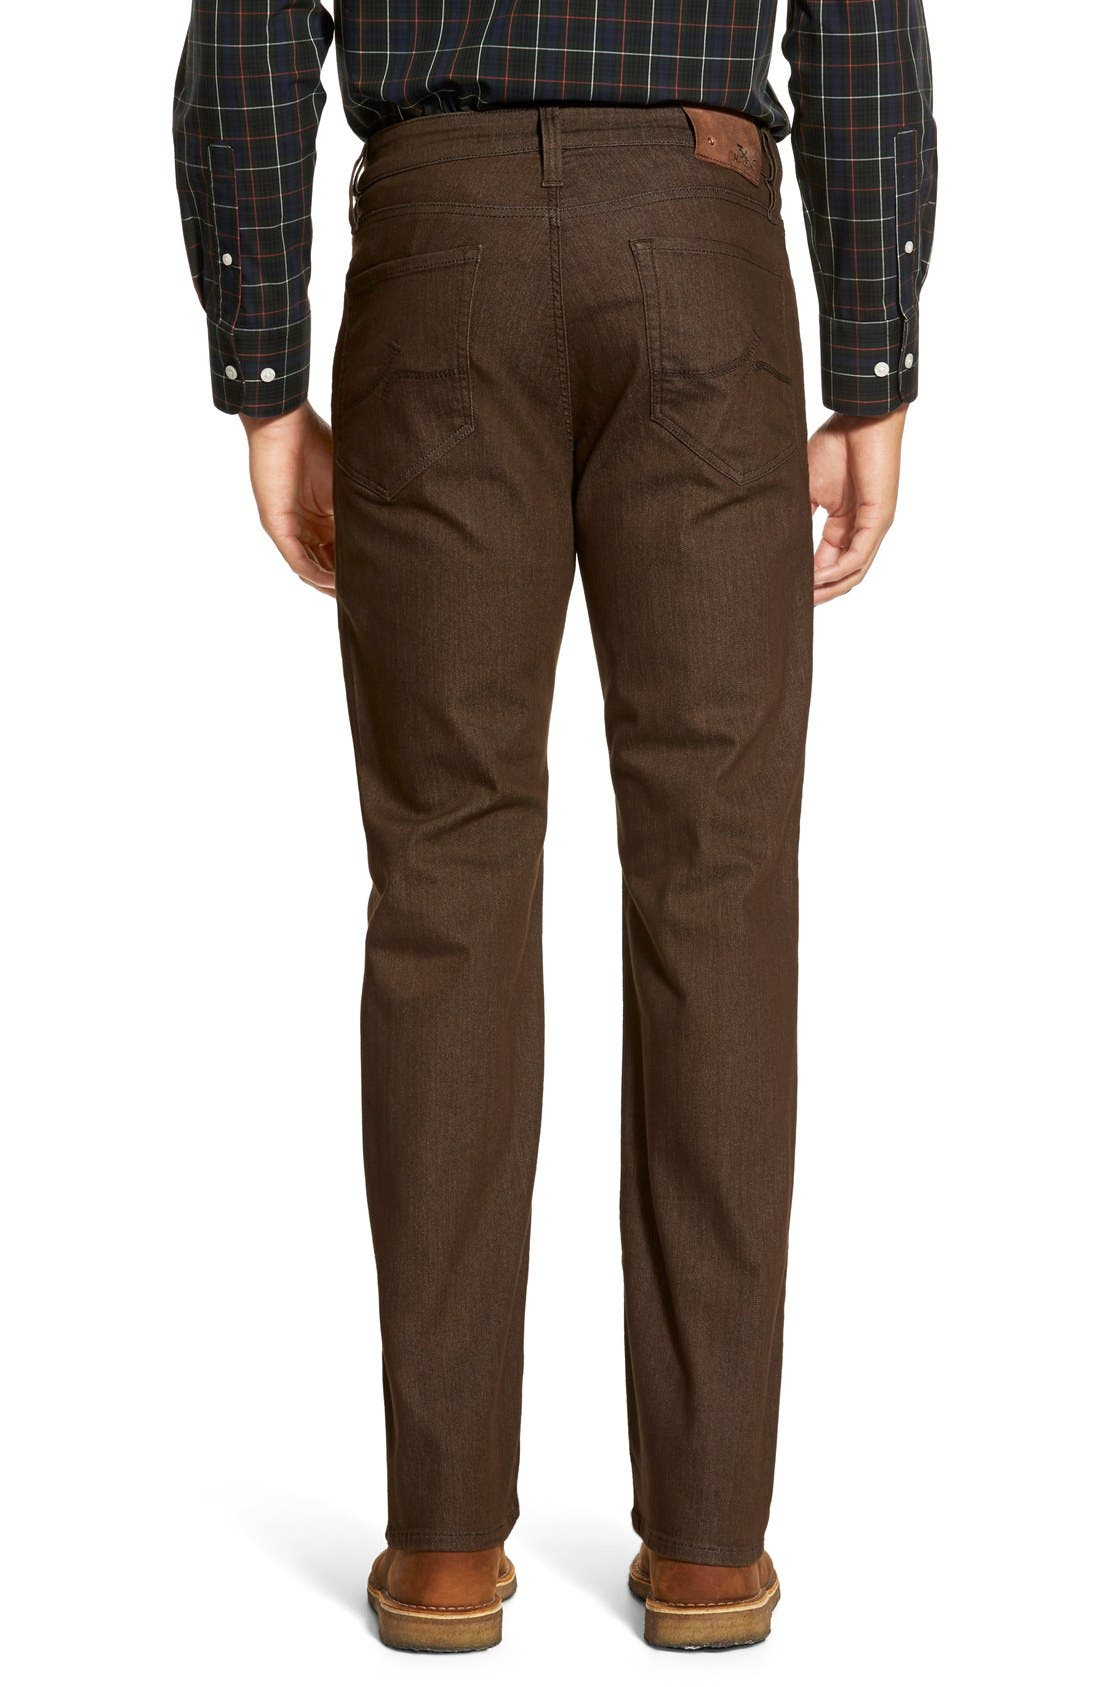 Alternate Image 2  - 34 Heritage 'Charisma' Relaxed Fit Jeans (Brown Comfort) (Regular & Tall)